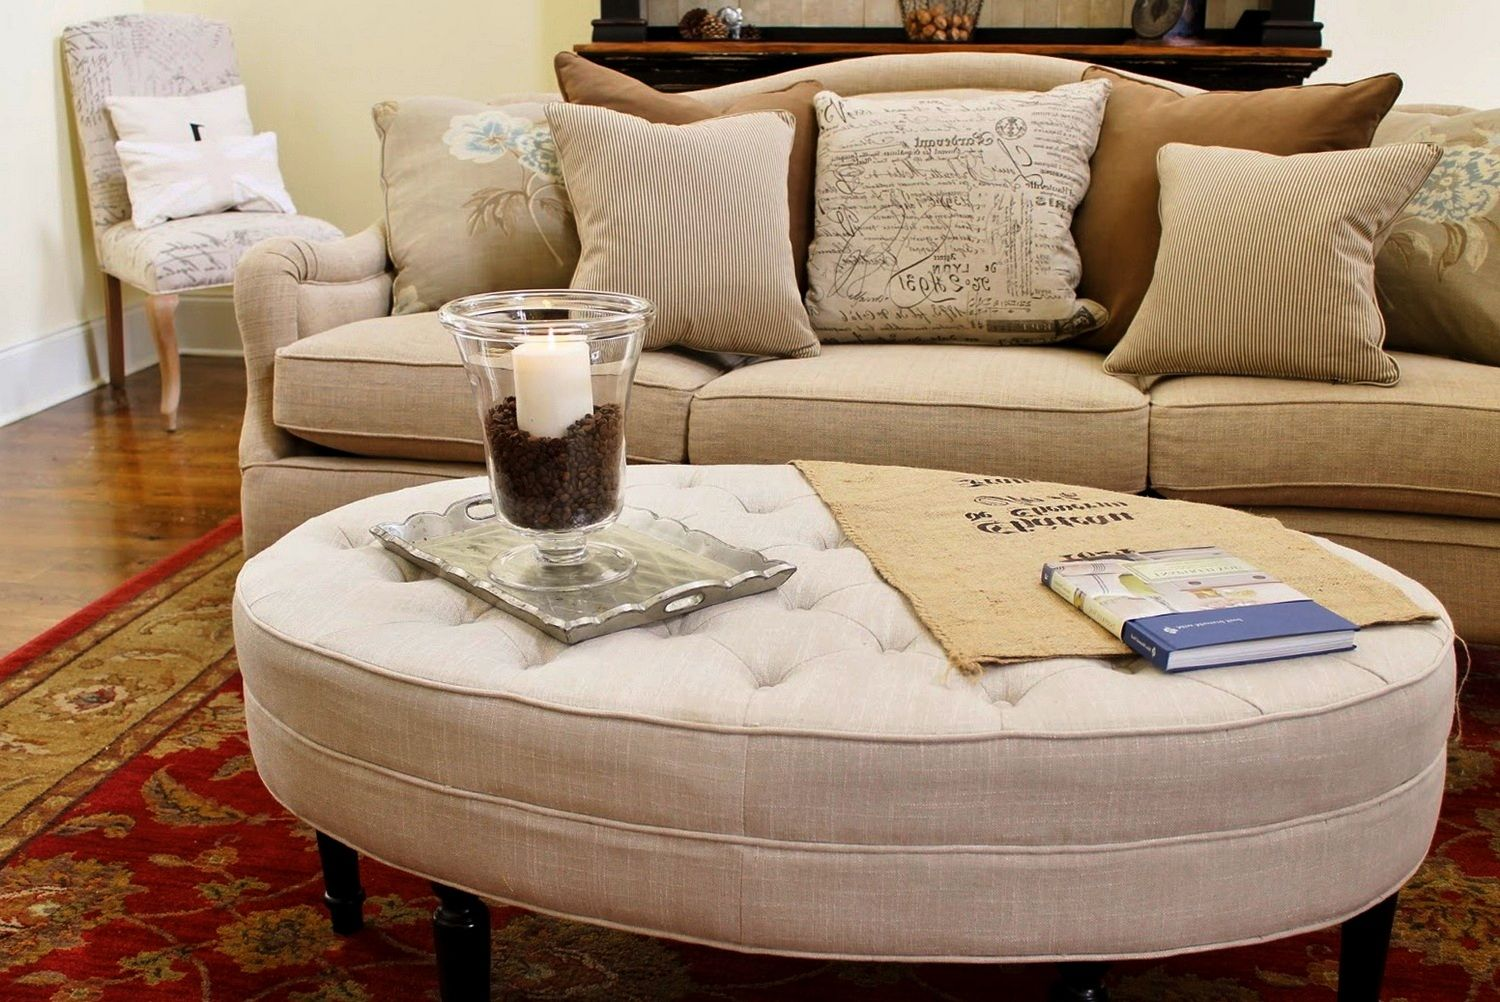 Oval Round Ottoman Coffee Table From Good Leather Leather Ottoman Coffee Table Tufted Ottoman Coffee Table Ottoman Table